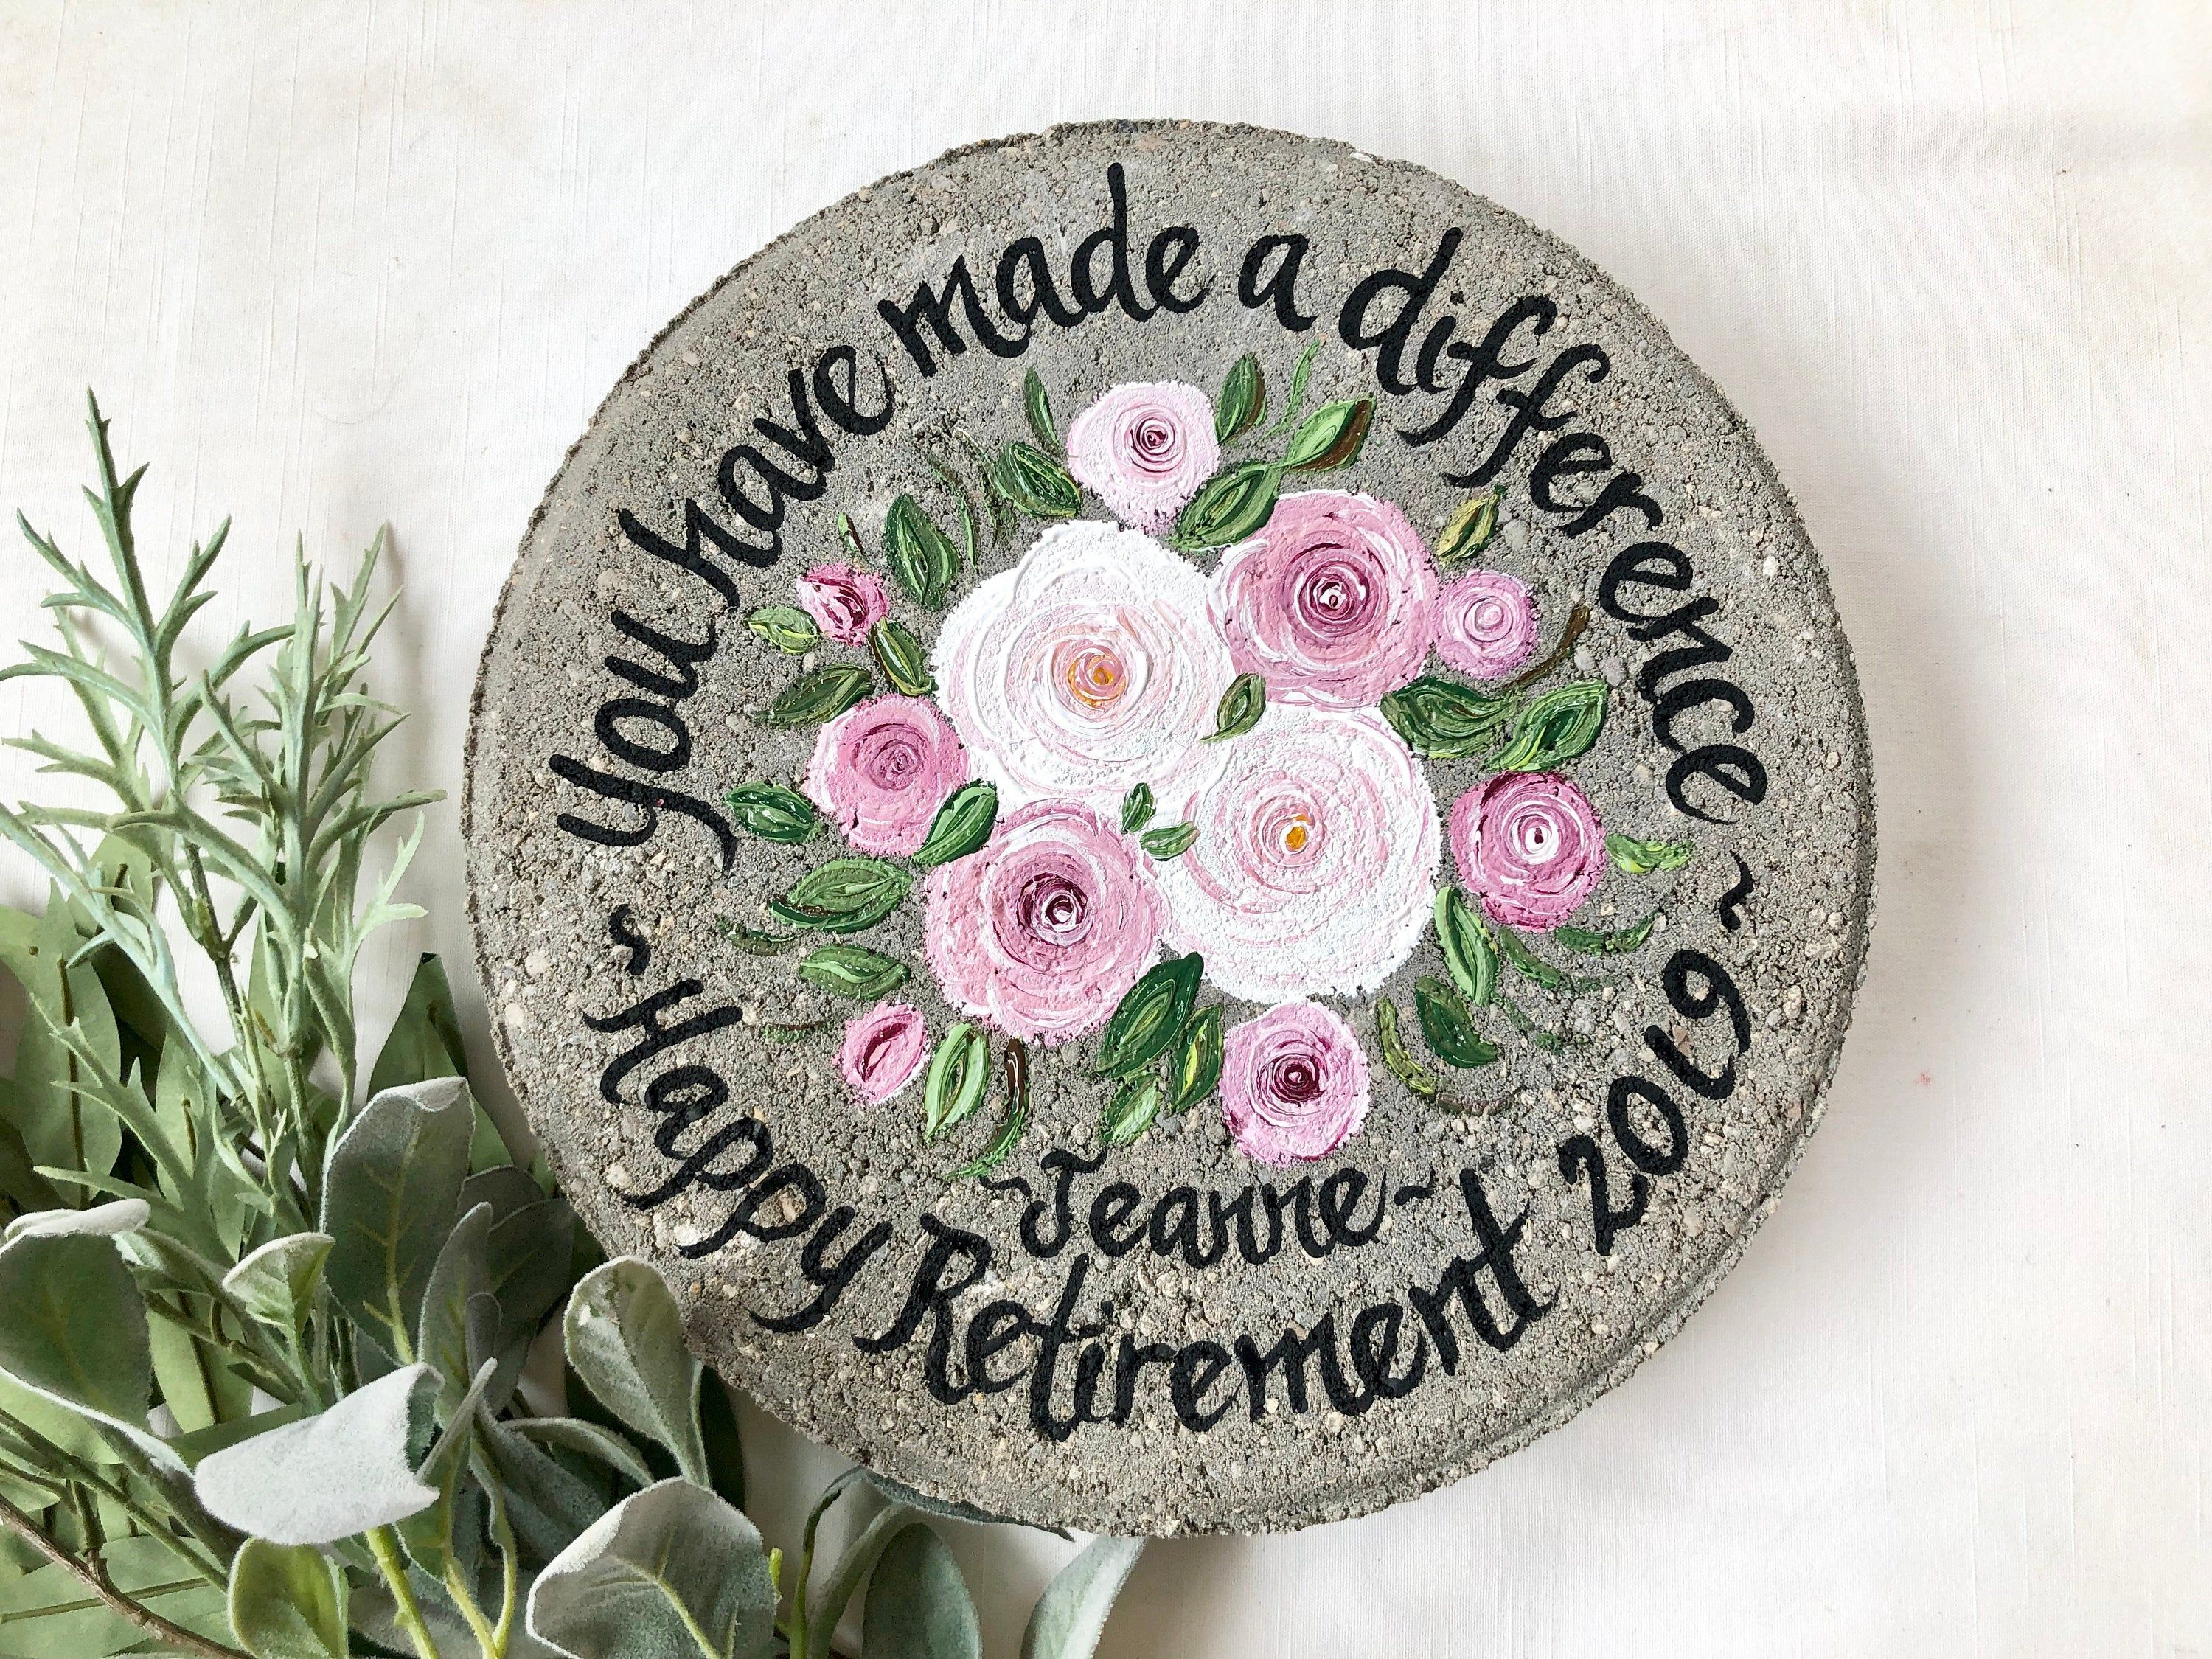 Retirement Gift Pink Roses Retirement Stone Retirement Etsy Retirement Gifts For Women Retirement Gifts Wedding Gifts For Parents